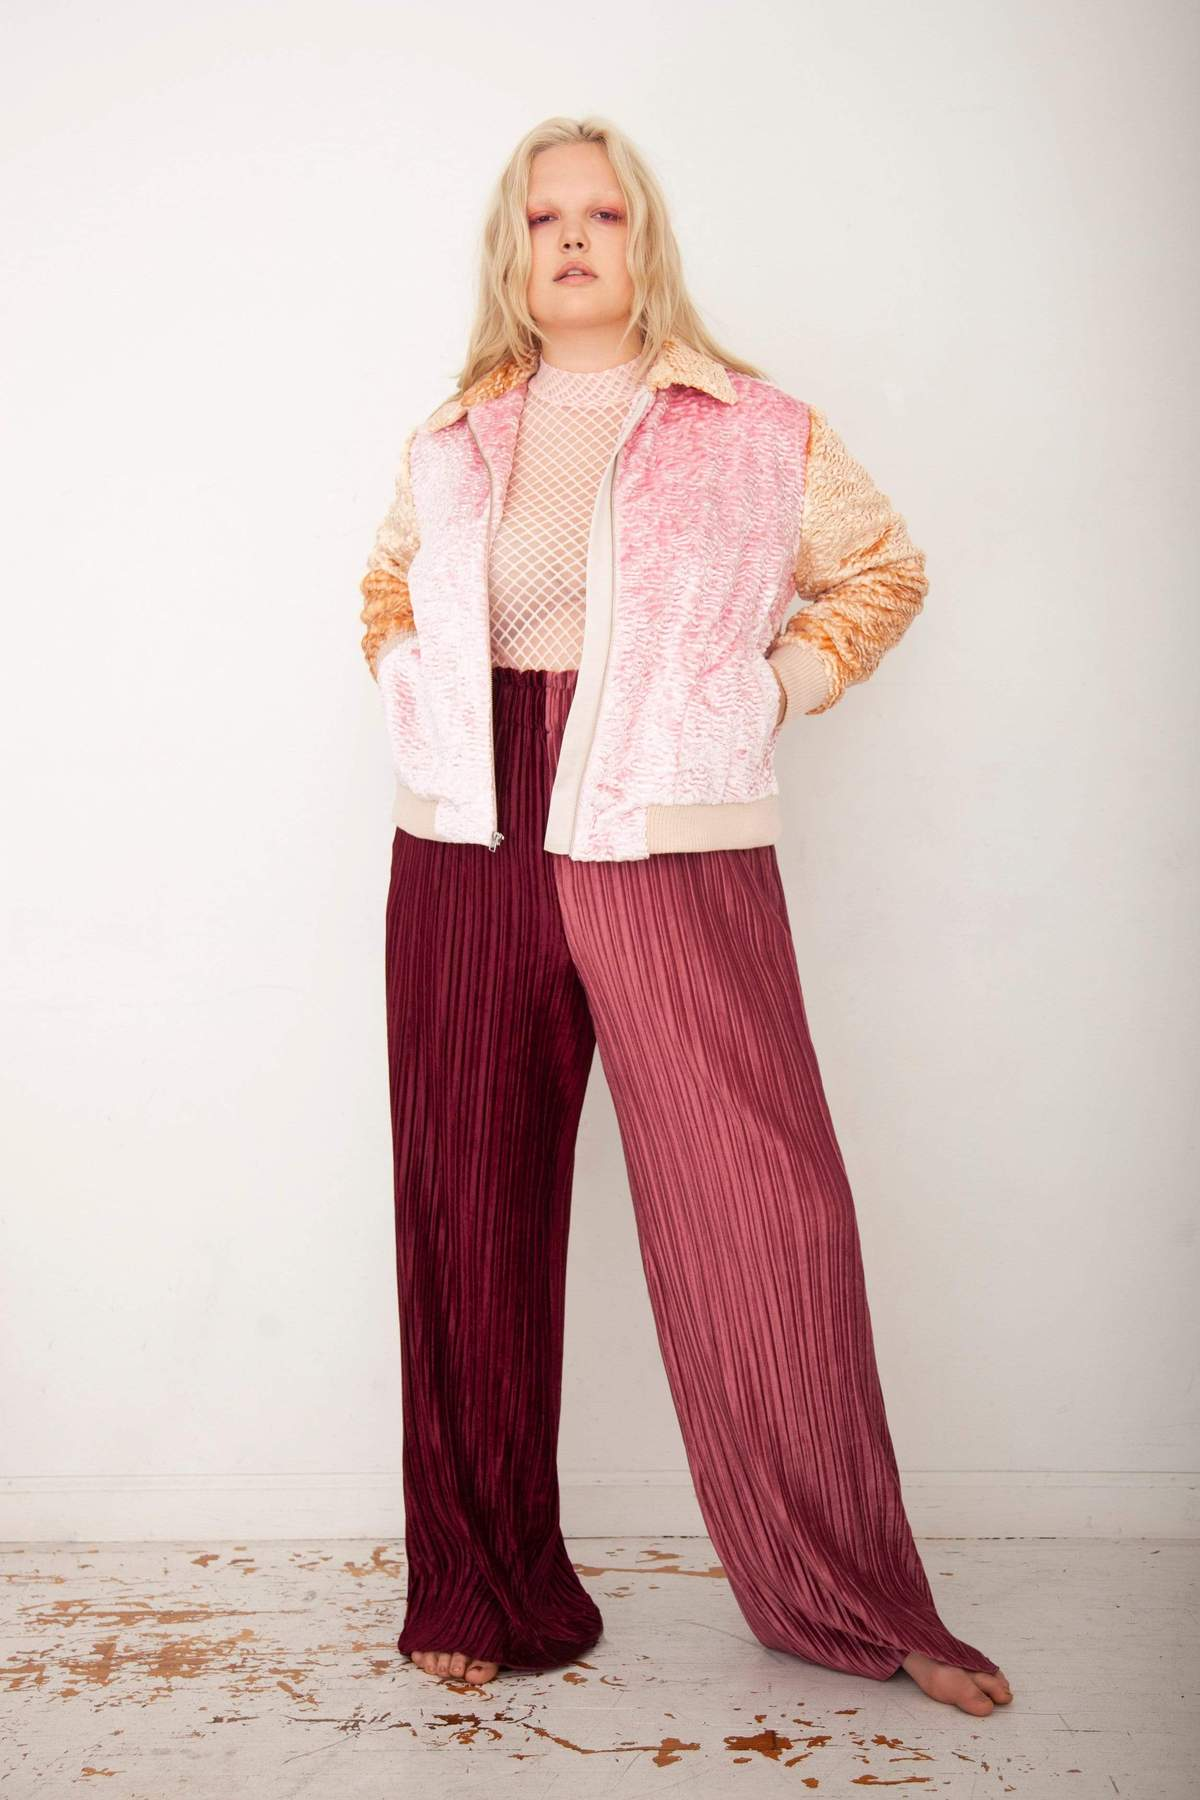 plus size Androgynous outfit